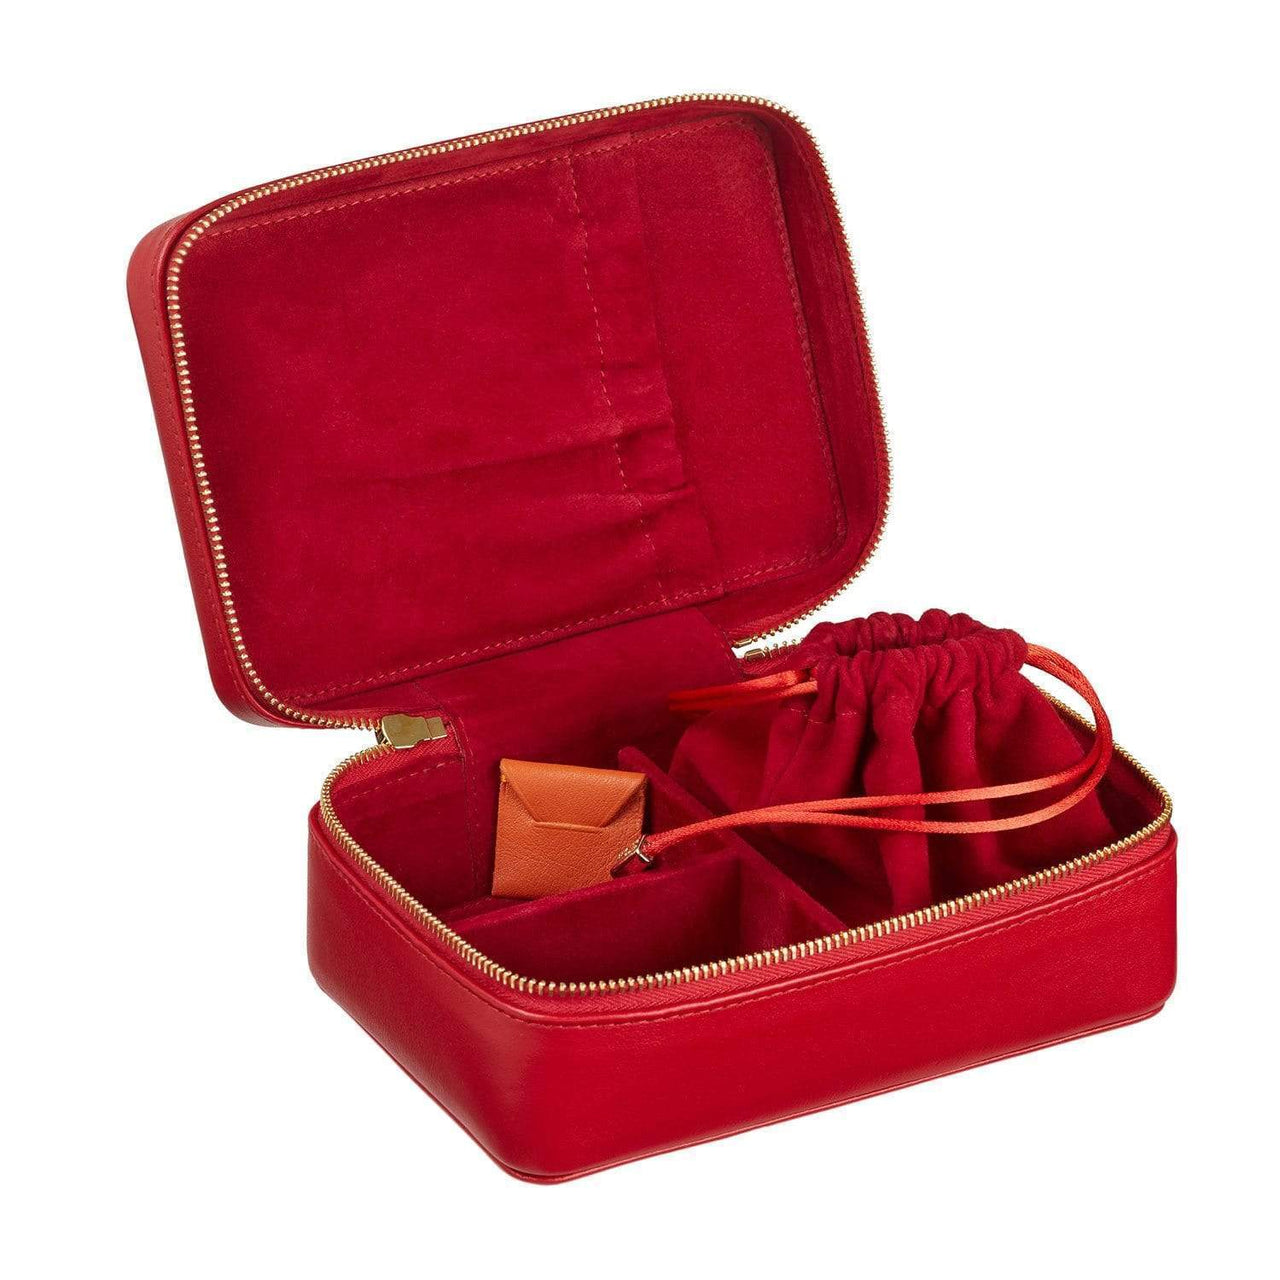 STOW Jewelry Cases Ridge Red / Blind Amelia Leather Jewellery Case - Personalized